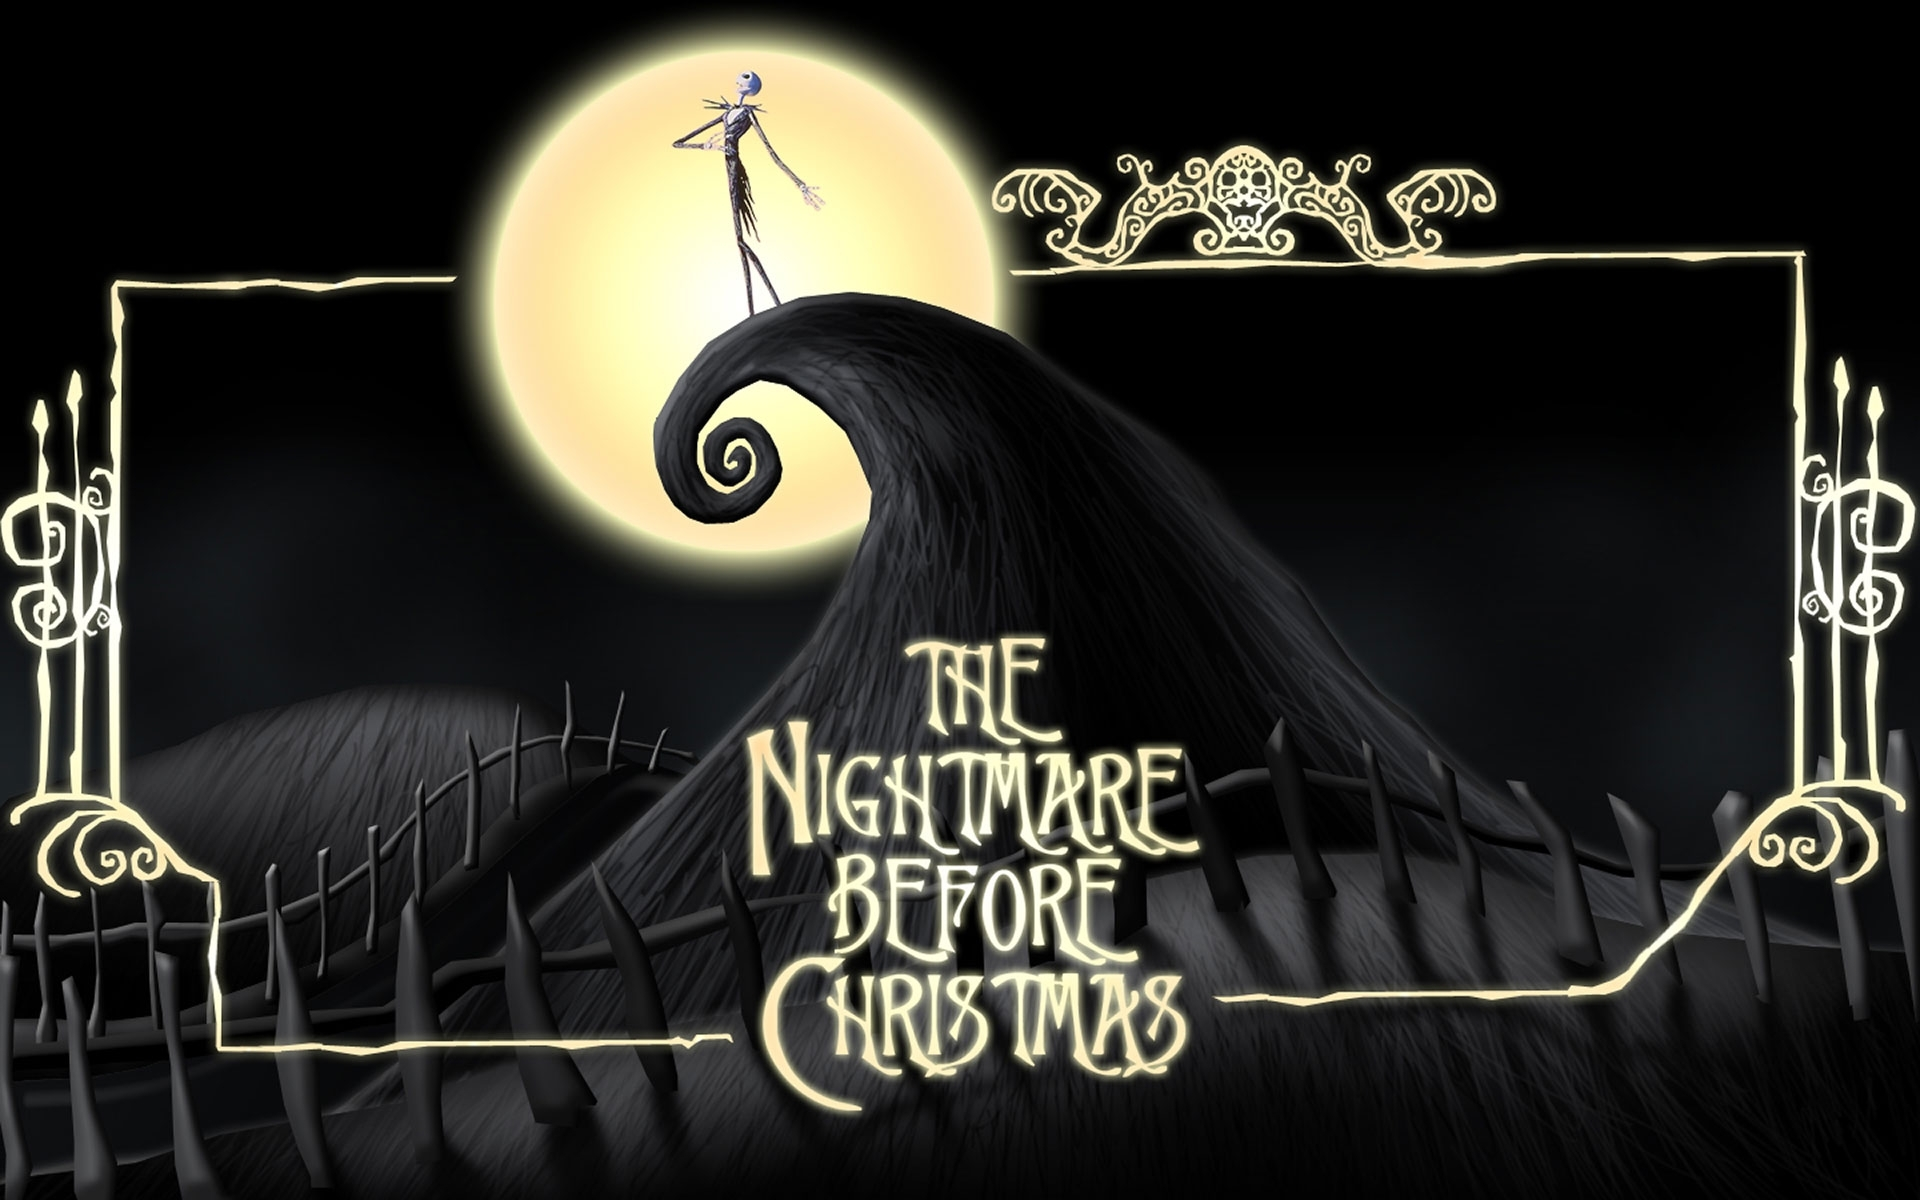 the nightmare before christmas full hd fond d'écran and arrière-plan